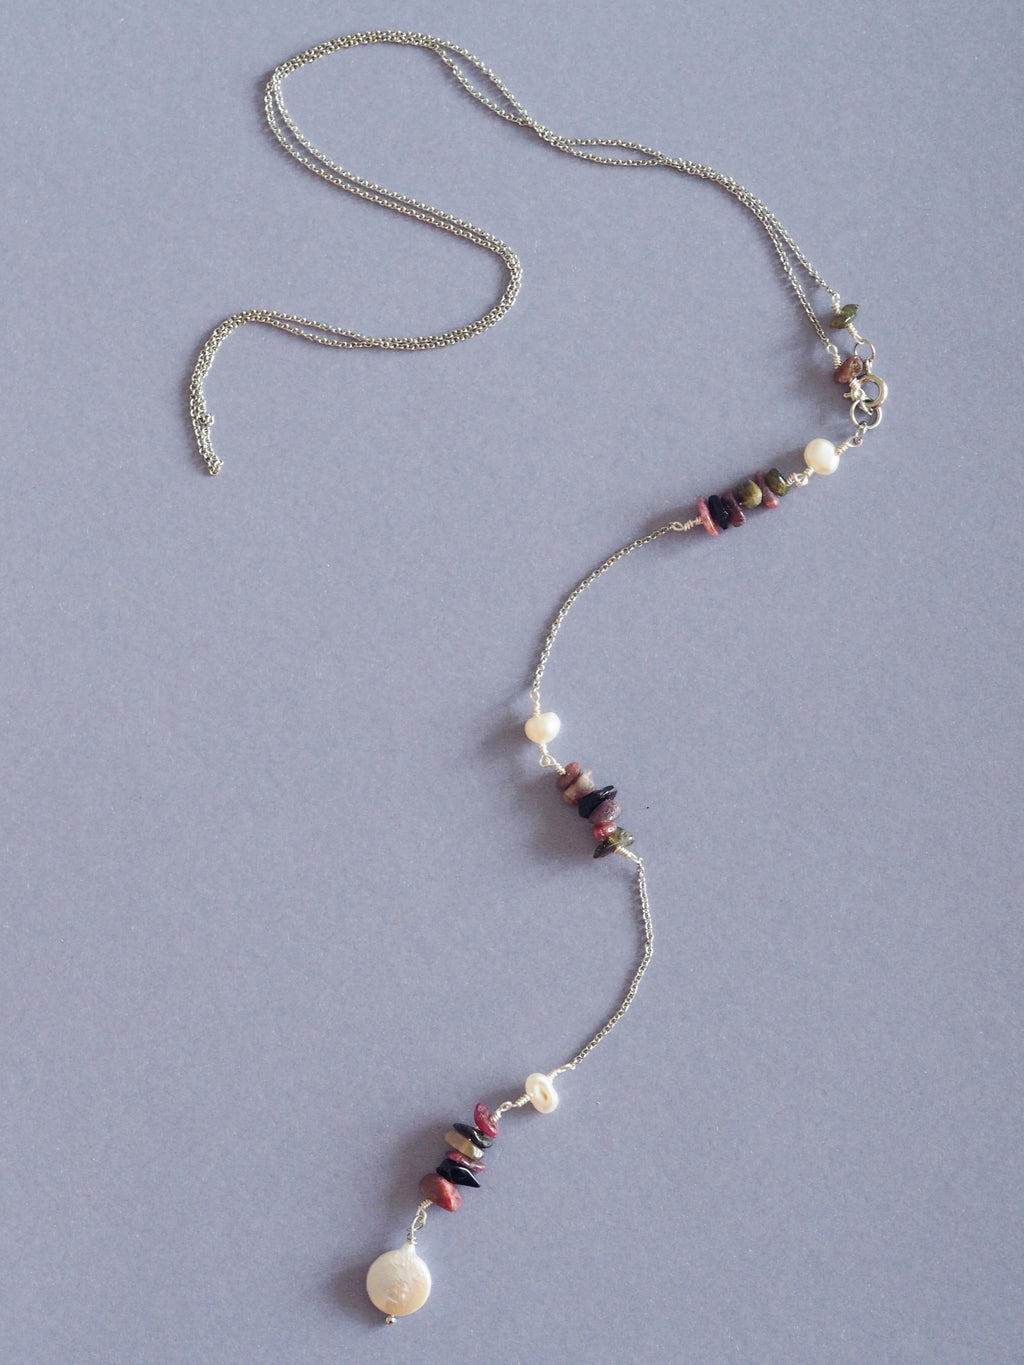 Long rhodonite necklace jewellery